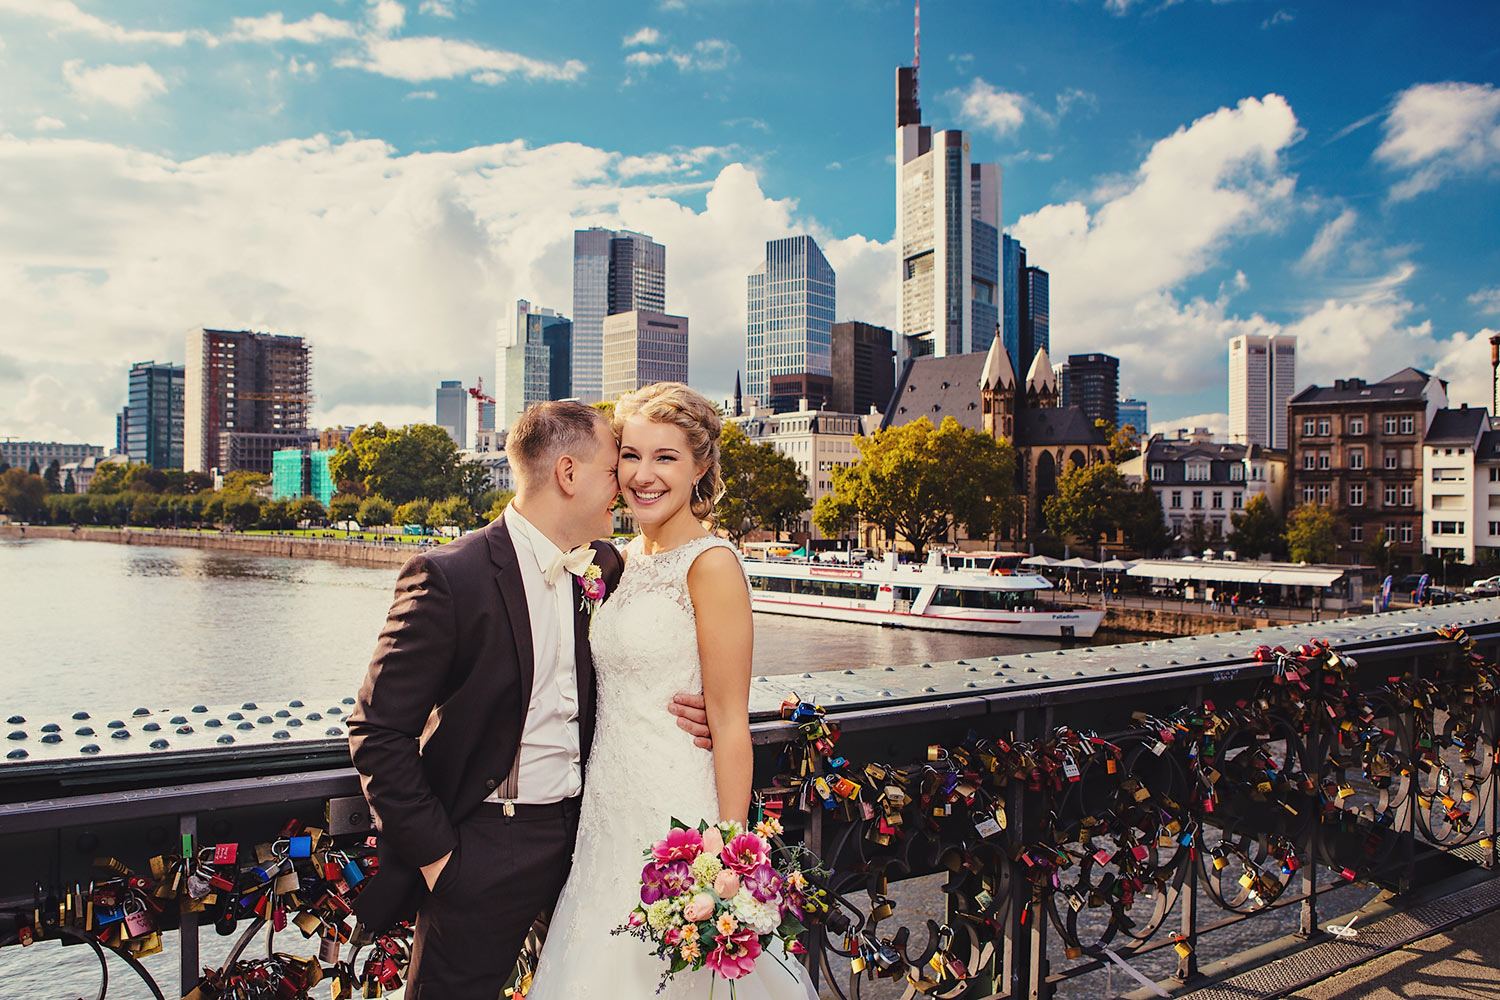 Wedding photographer in Frankfurt - True Love Photography